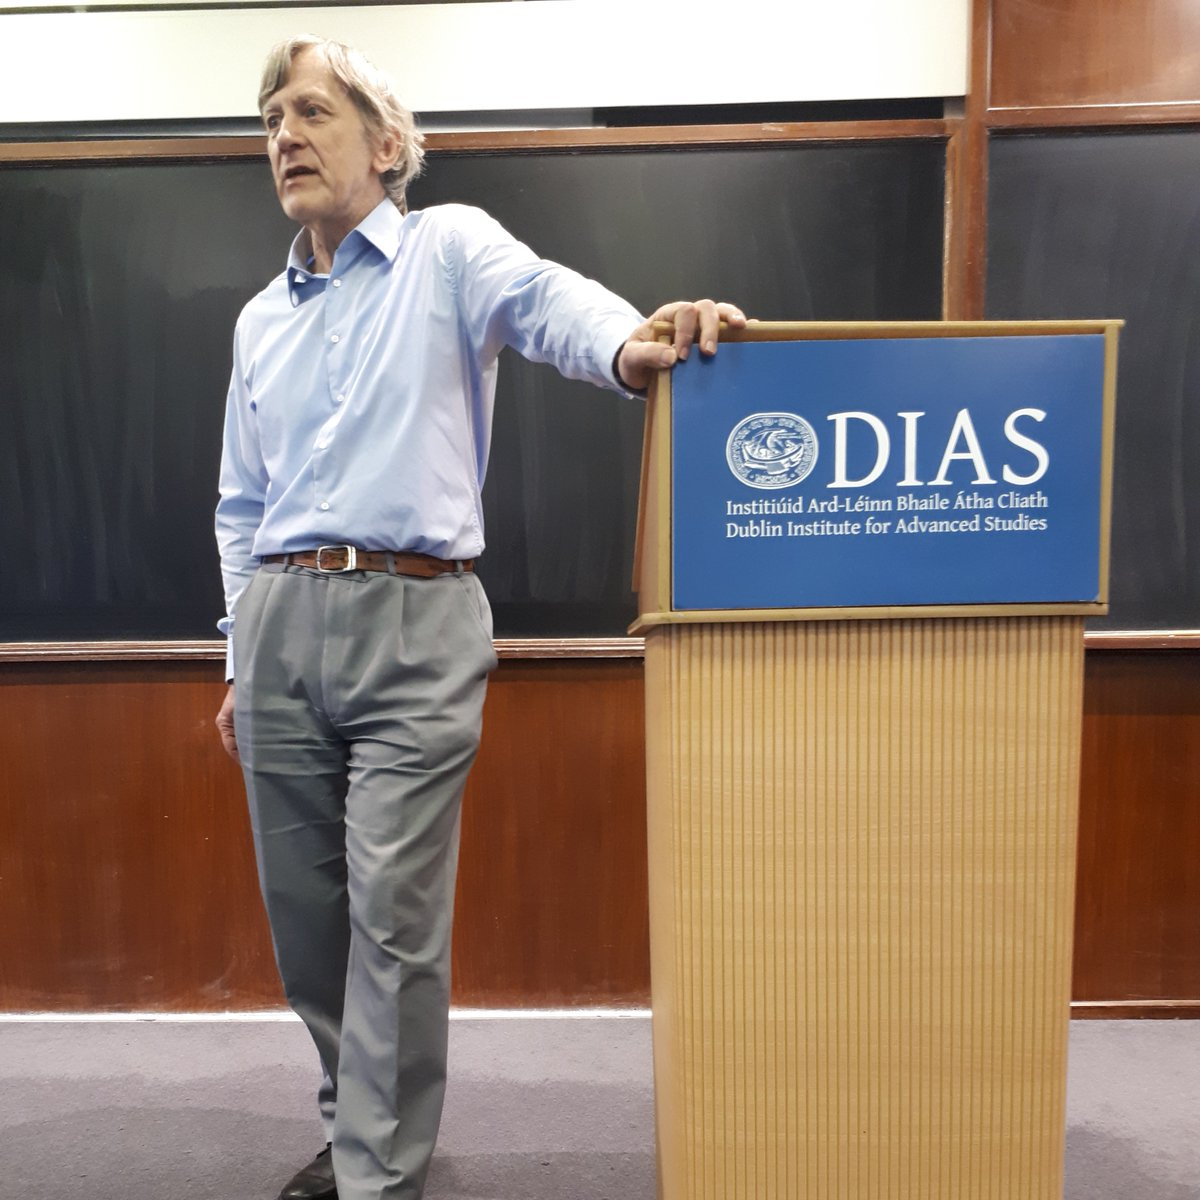 test Twitter Media - On Thursday, Werner Nahm had us 'thinking outside the box' at the fourth and final @DIAS_Dublin 'What is Life?' lecture series. The series commemorated the 75th anniversary of Erwin #Schrödinger's ground breaking series being published as a book. #DIASdiscovers https://t.co/DQINUAGq5T